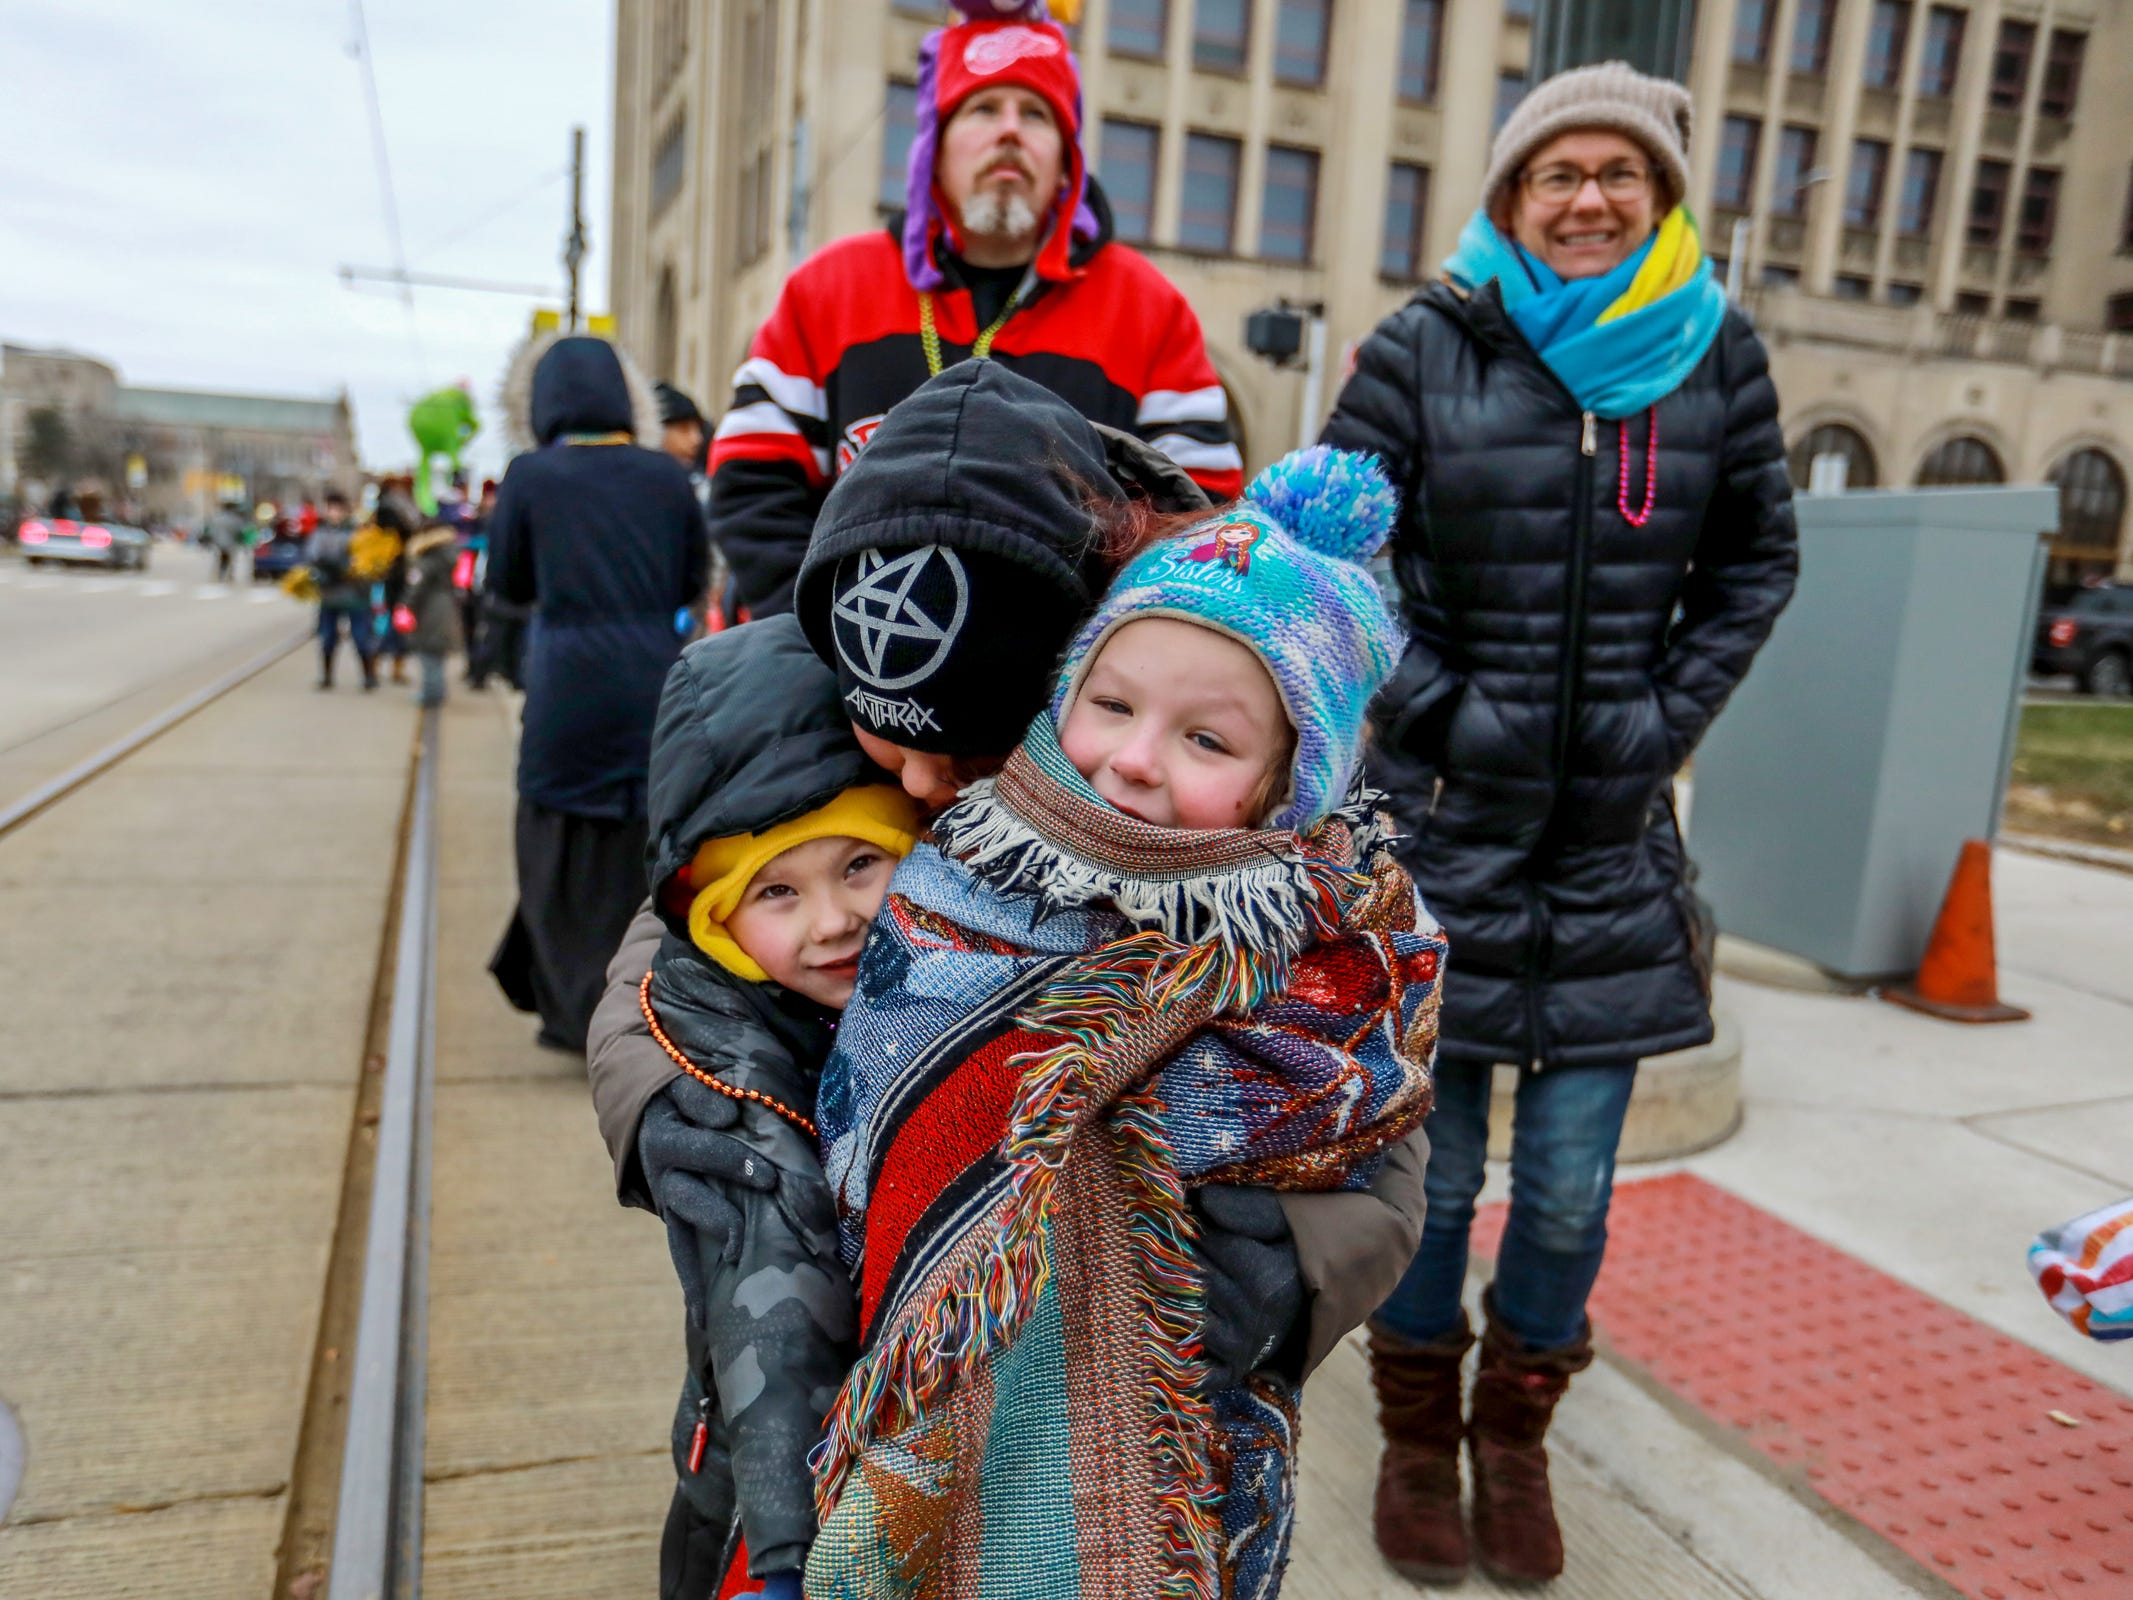 Christina Romero, 30, of East Pointe hugs Eric Pearsall, 5, left, and Aurora Cuthbertson, 6, of Mt. Clemens, Mich, as they stand on the side watching America's Thanksgiving Parade in Detroit on Thursday, Nov. 22, 2018.